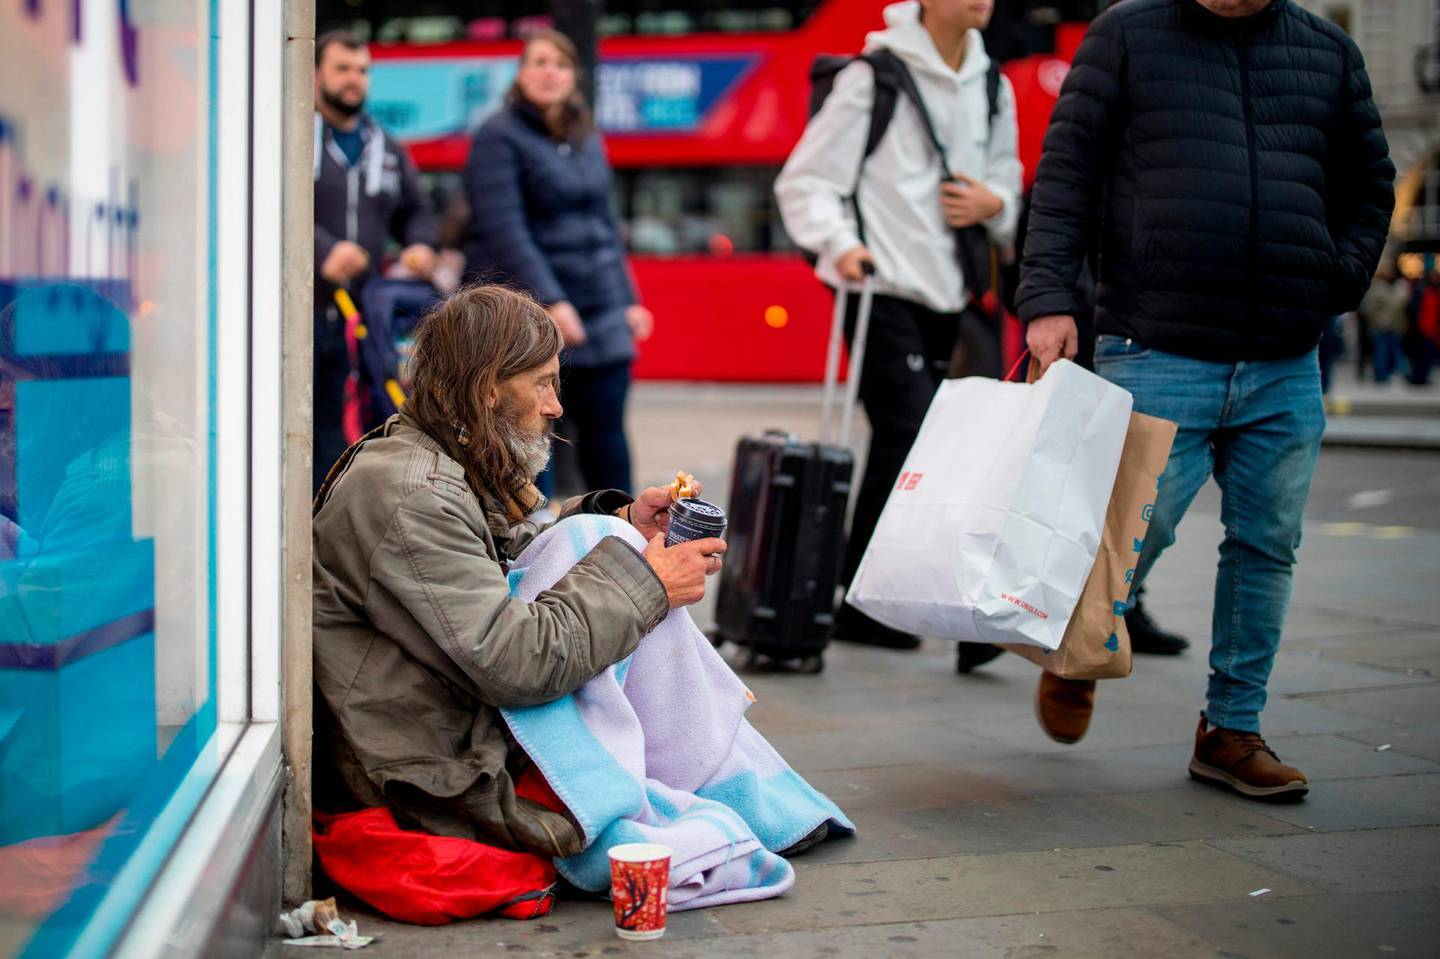 A homeless man, who has been rough sleeping for 5 years, begs in central London on November 8, 2019.  As record numbers of Britons flock to food banks and homelessness soars, for many people rampant poverty, not Brexit, is the main issue in next week's general election. - TO GO WITH AFP STORY BY ROLAND JACKSON  / AFP / Tolga Akmen / TOLGA AKMEN / TO GO WITH AFP STORY BY ROLAND JACKSON